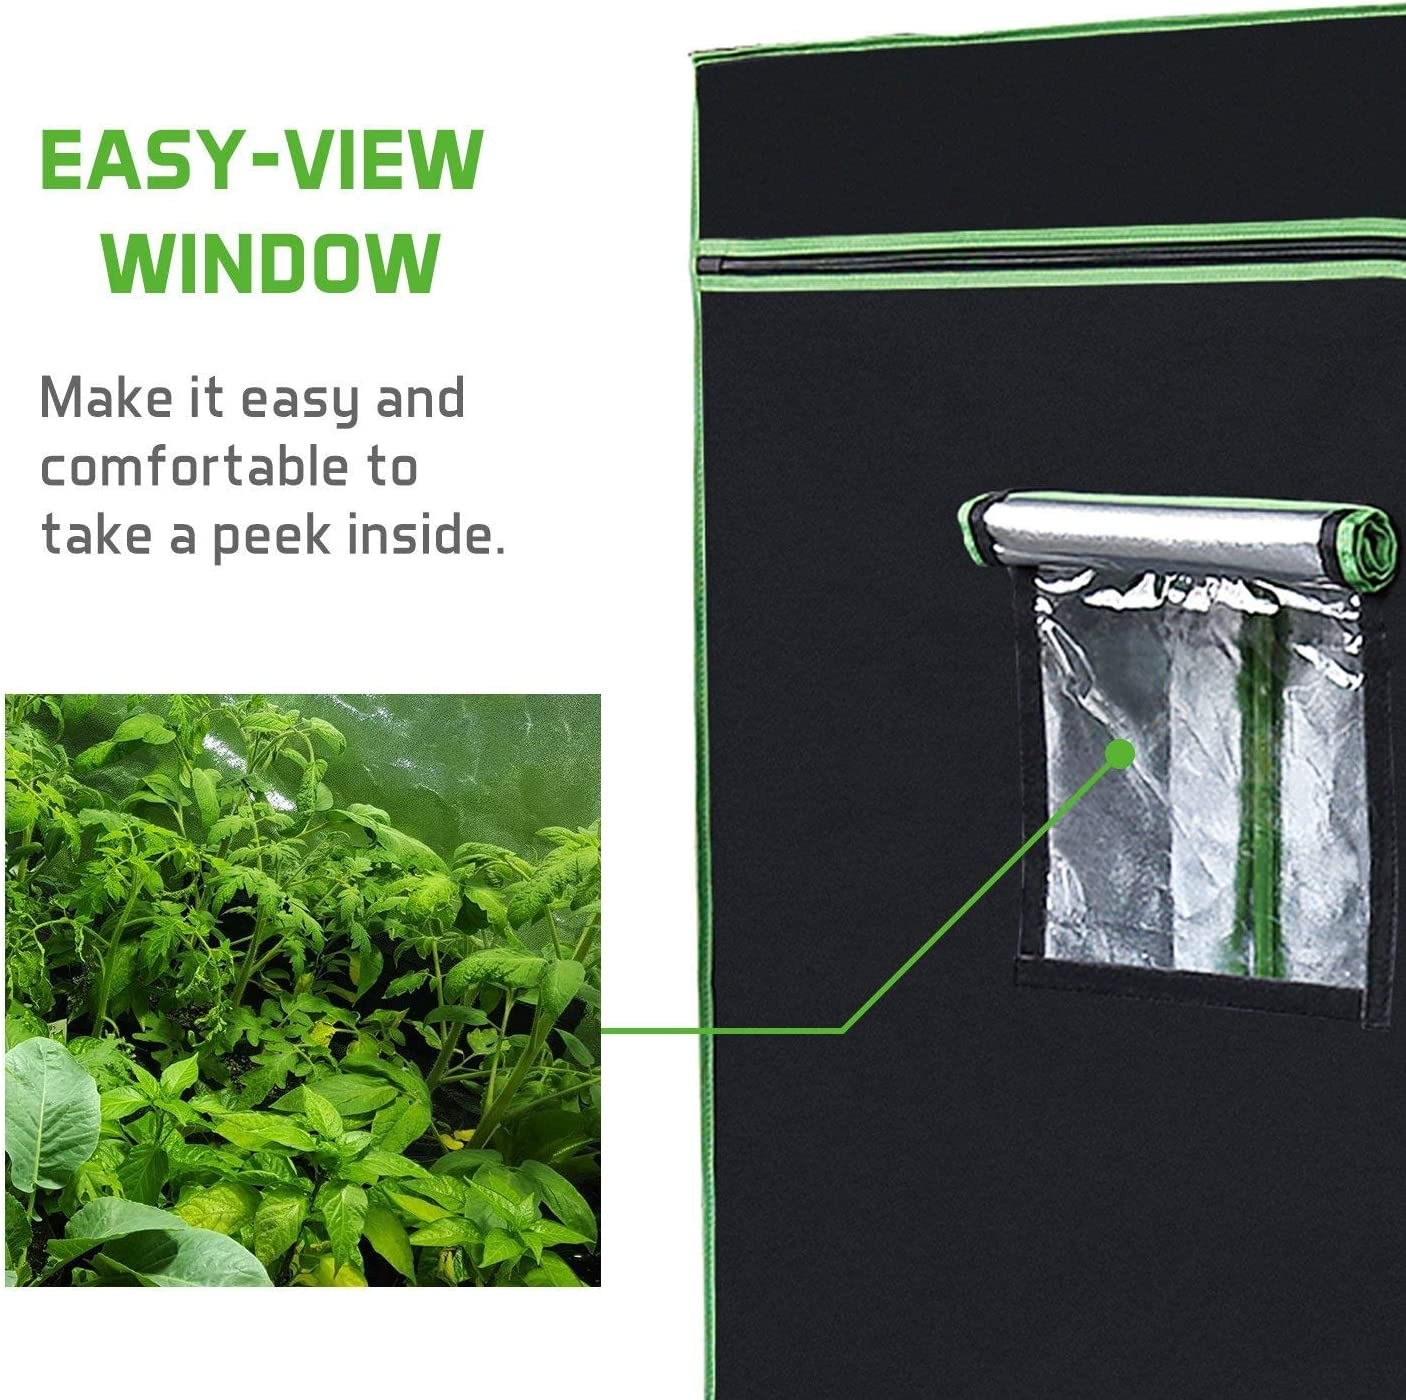 VIVOSUN 120 x120 x80 Mylar Hydroponic Grow Tent with Observation Window and Floor Tray for Indoor Plant Growing 10 x10